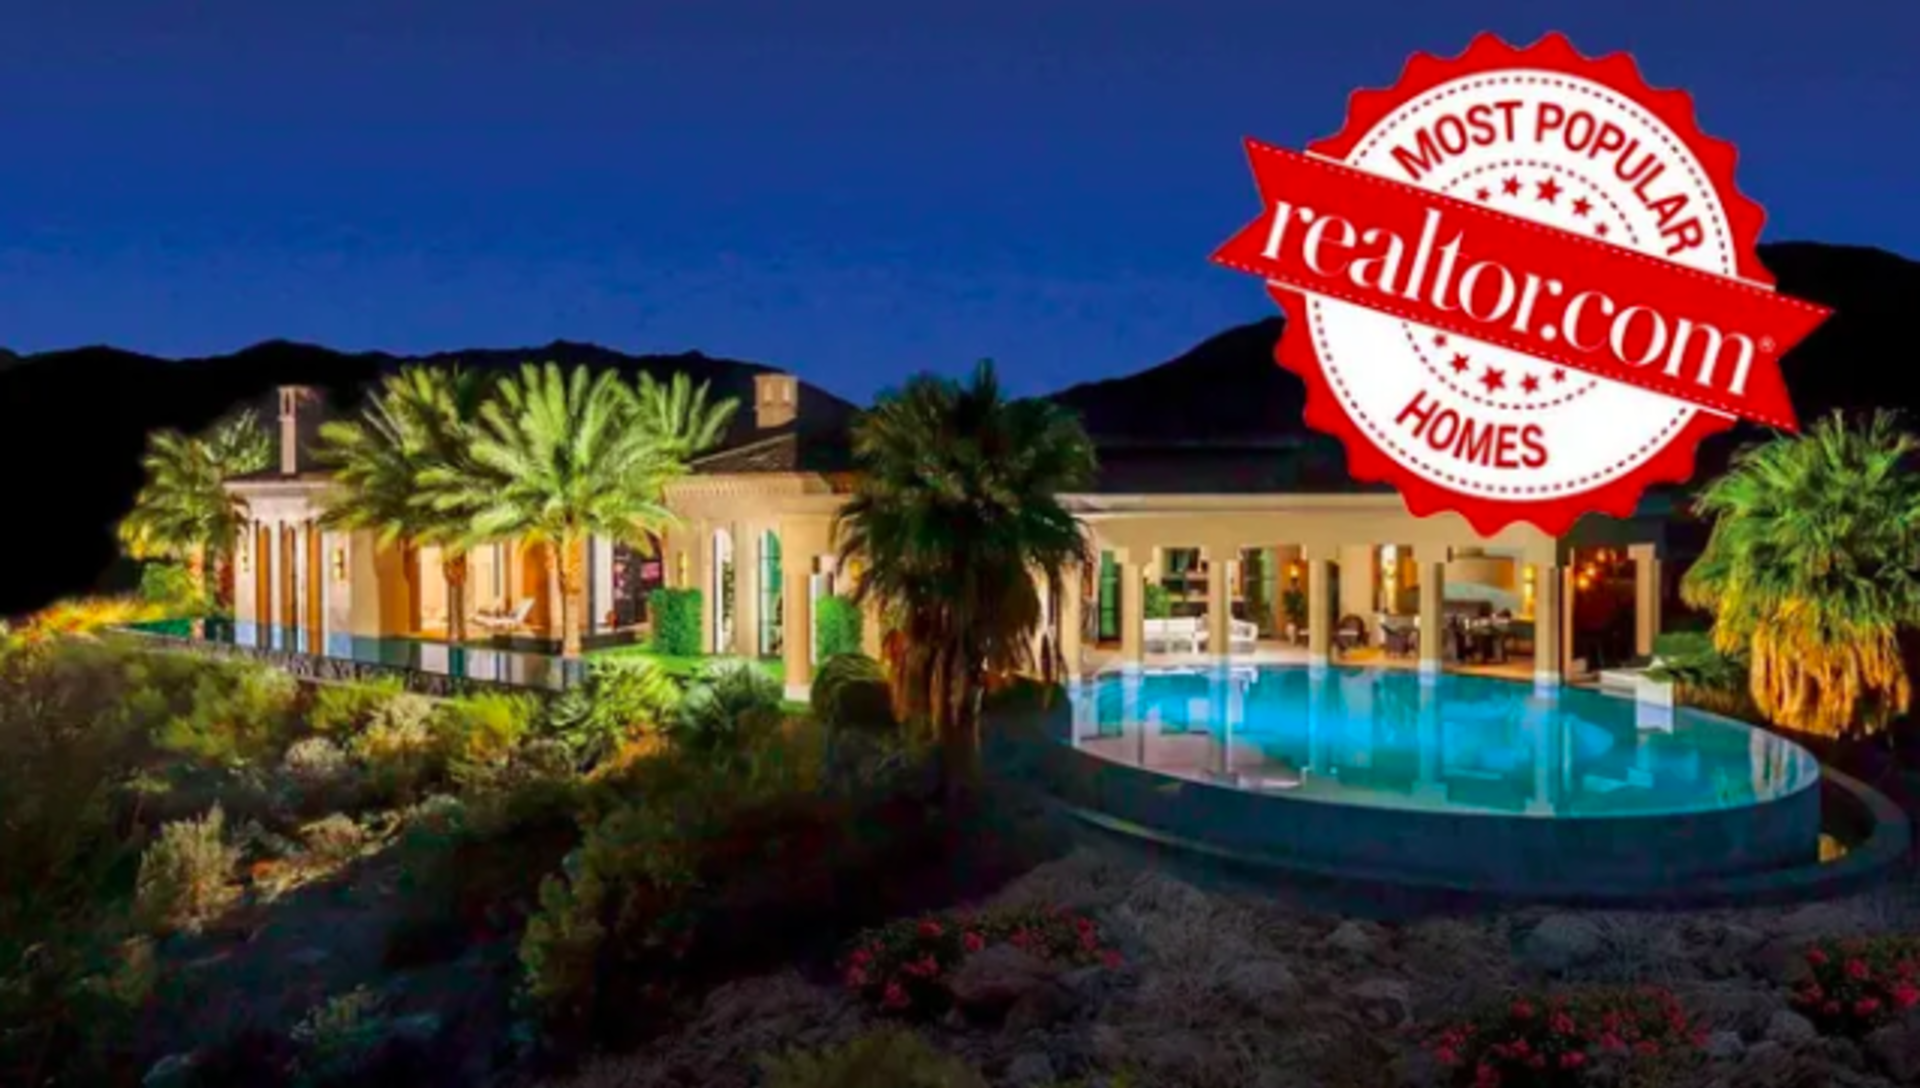 Casbah Cove Really Rocks This Week's Most Popular Homes